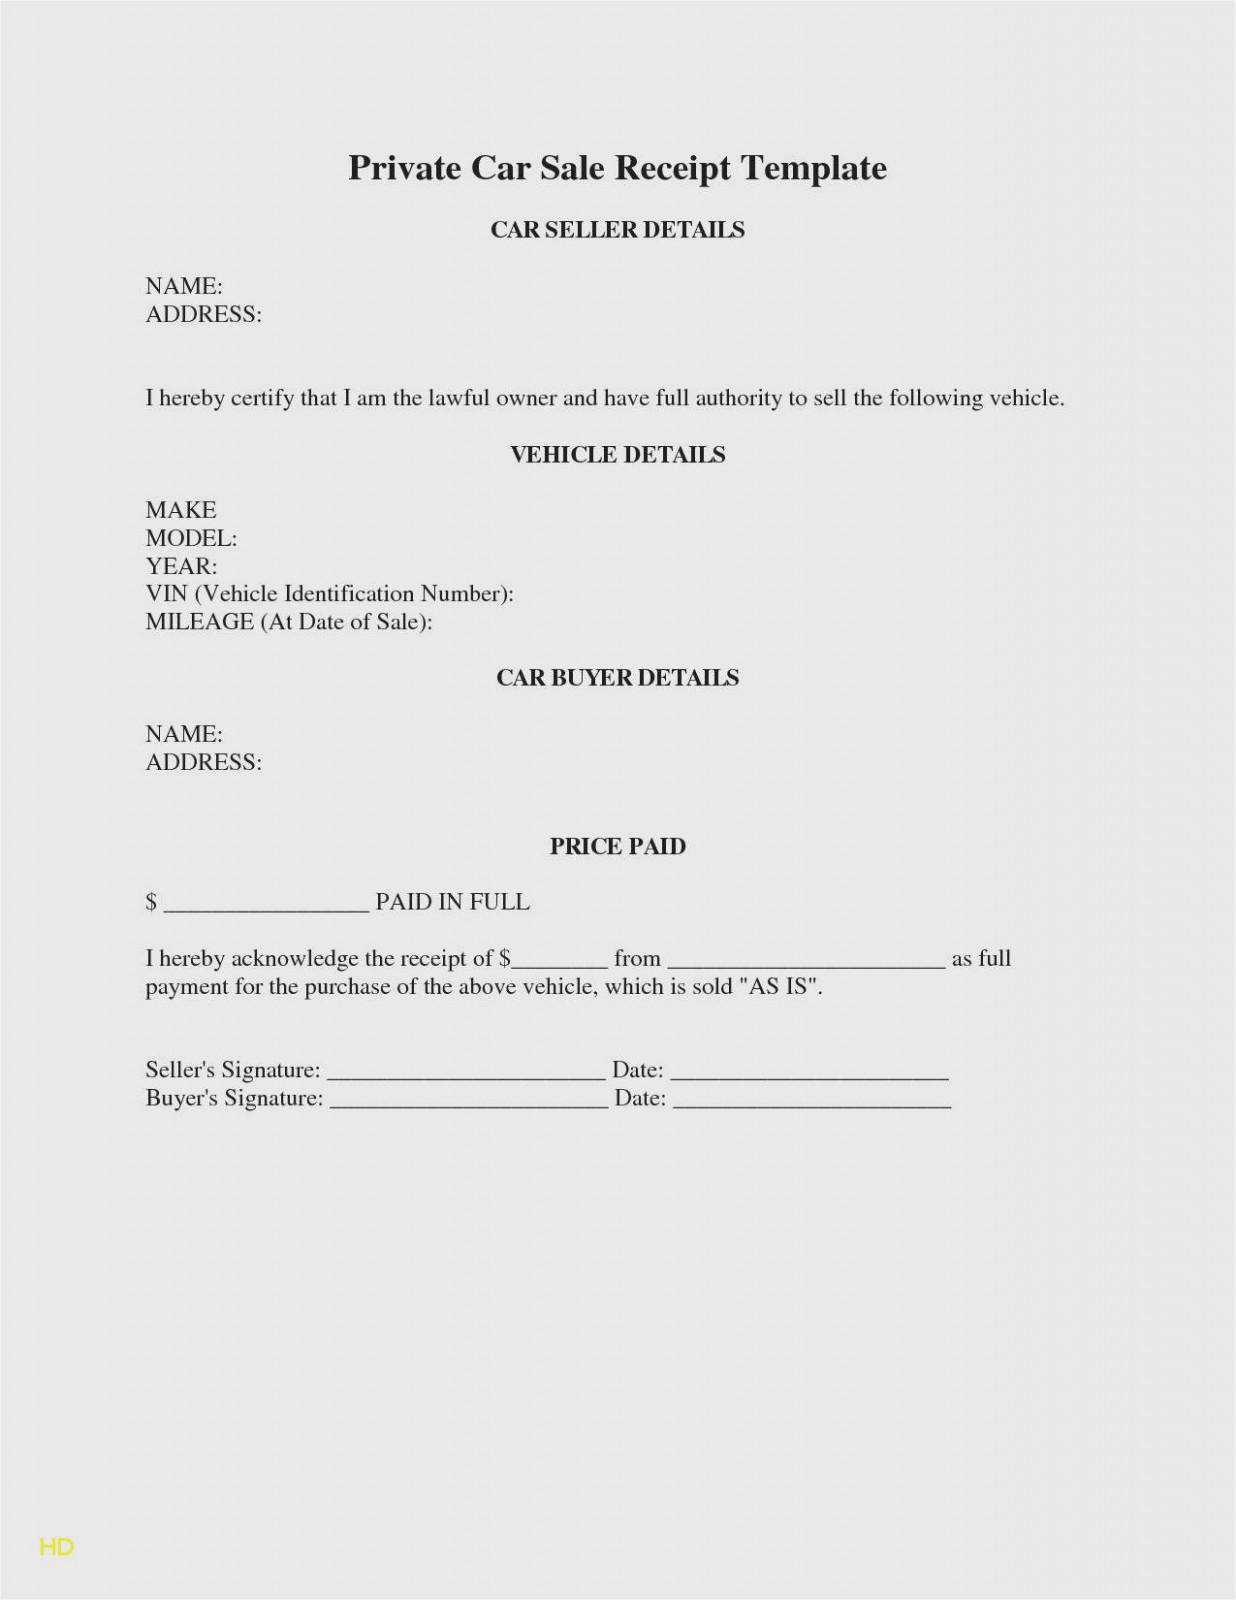 Free Car Sales Receipt Template